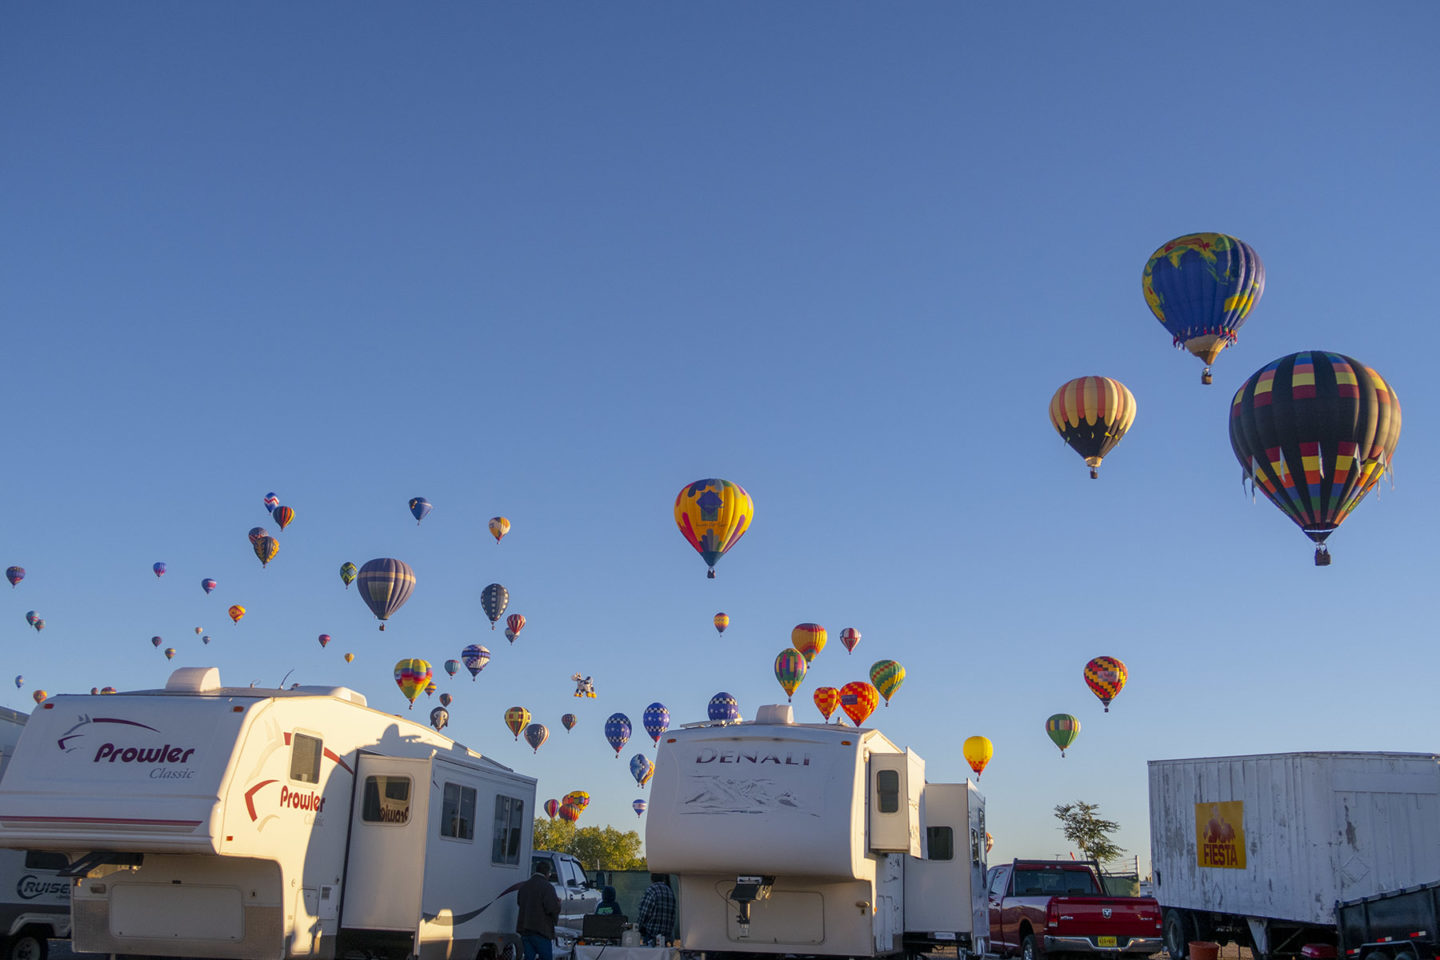 Hot air balloons over campground at Albuquerque Balloon Fiesta